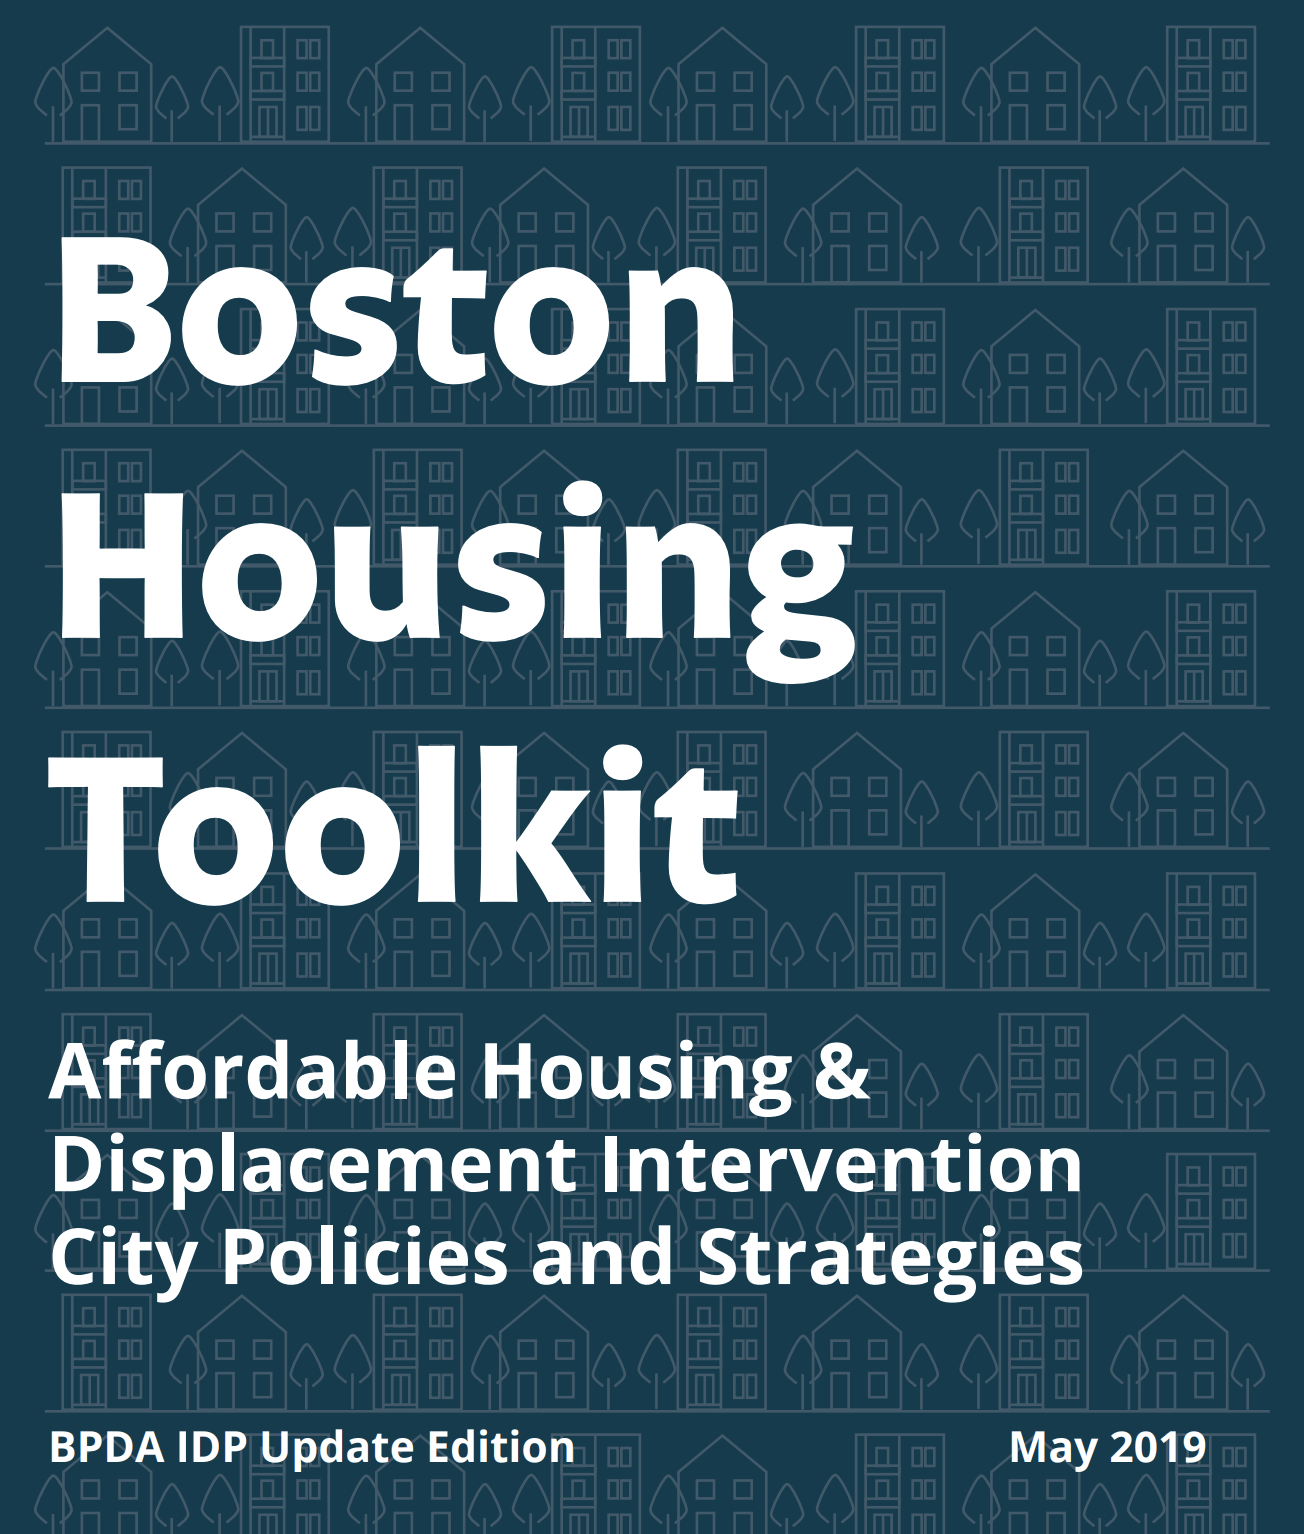 Boston Housing Toolkit